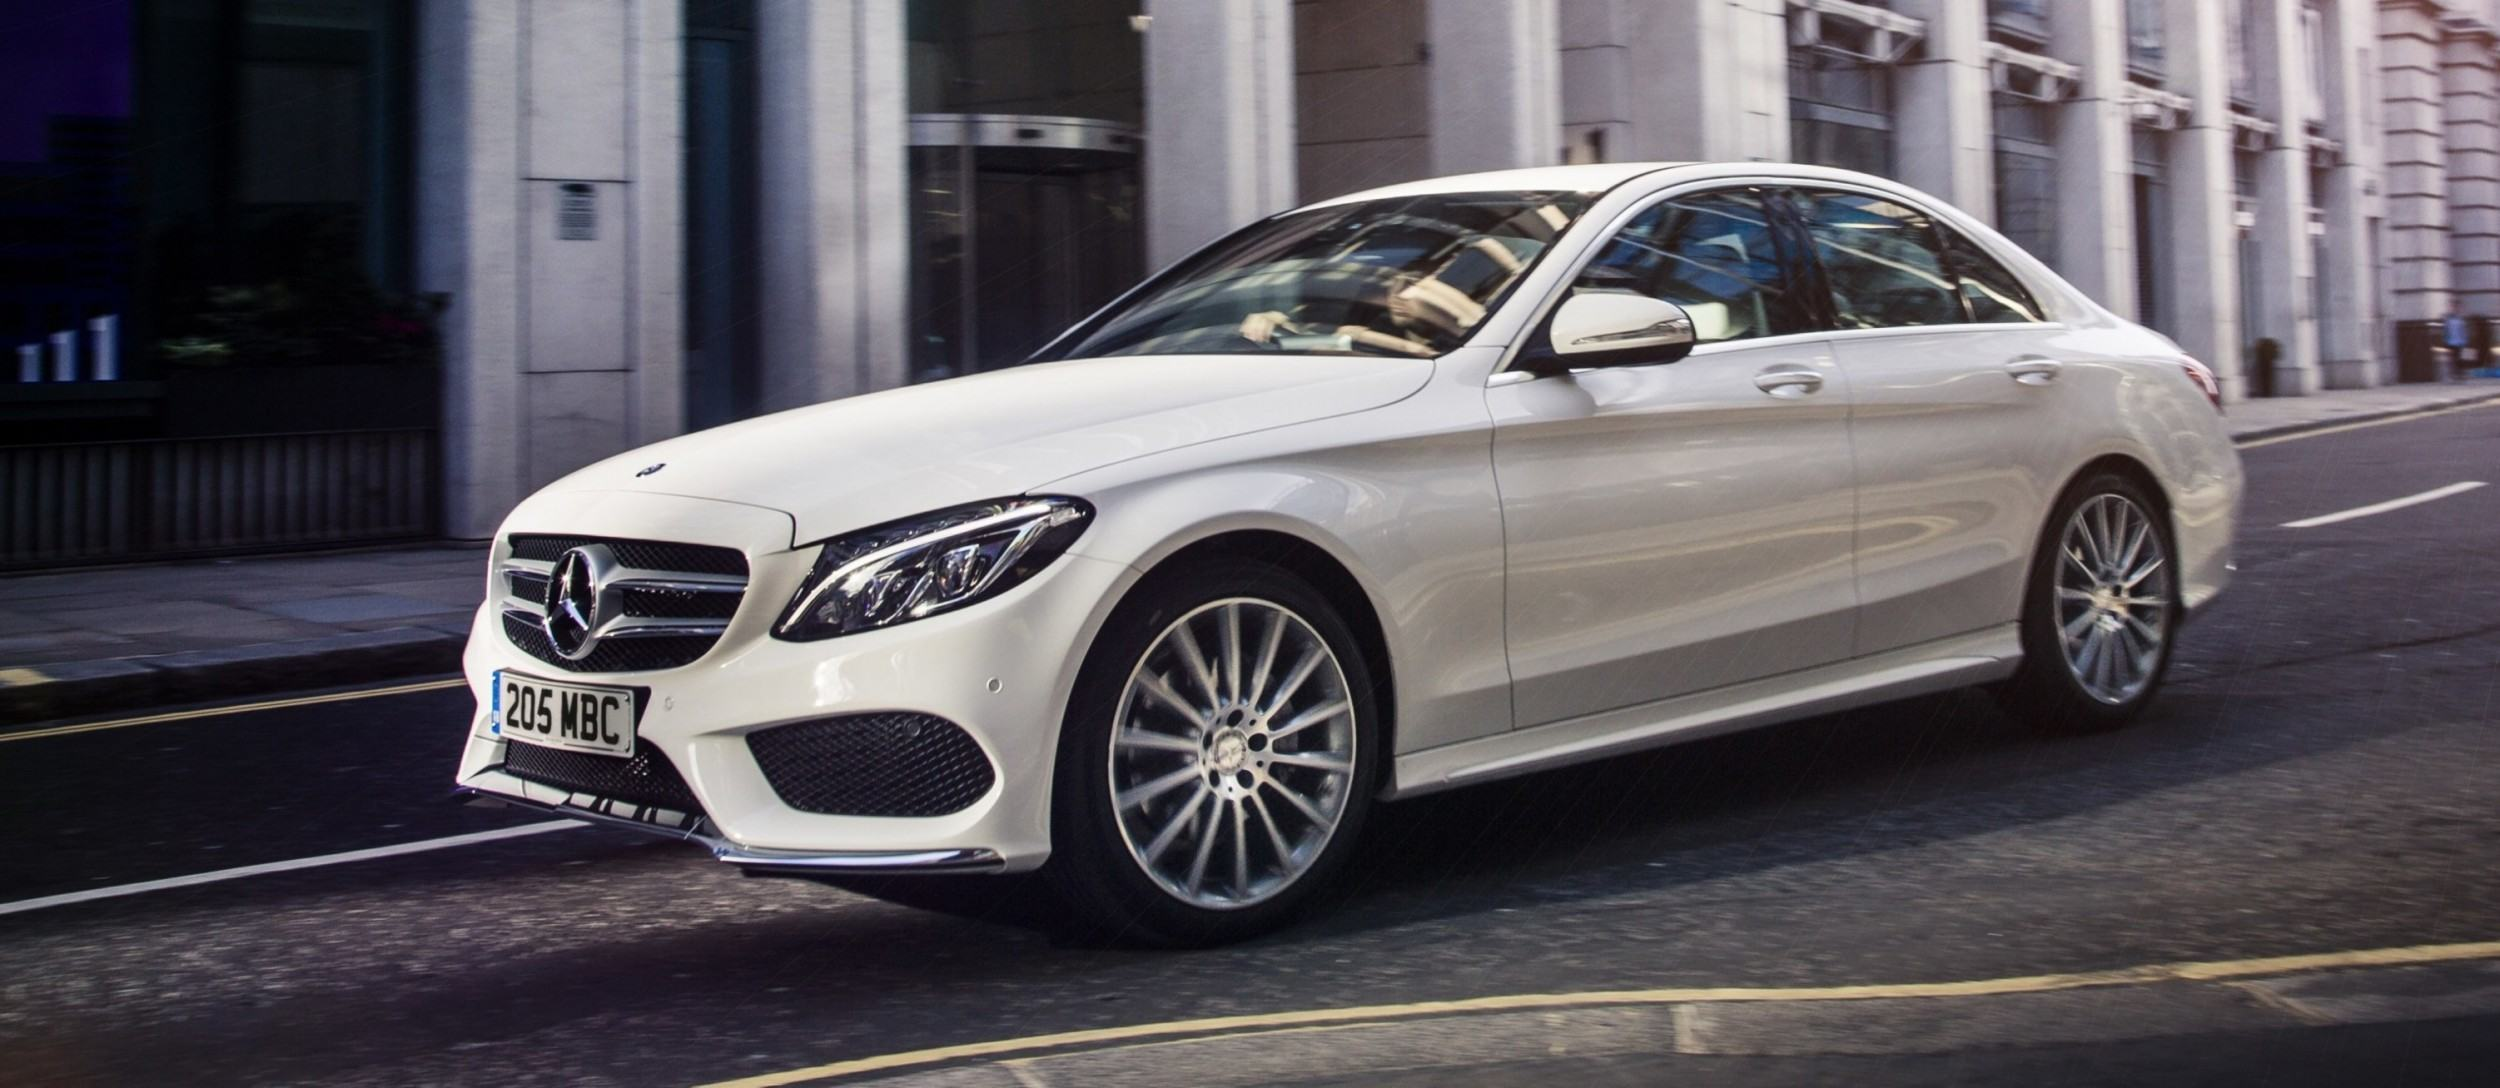 2015 mercedes benz c class in 40 new photos from london for New 2015 mercedes benz c class